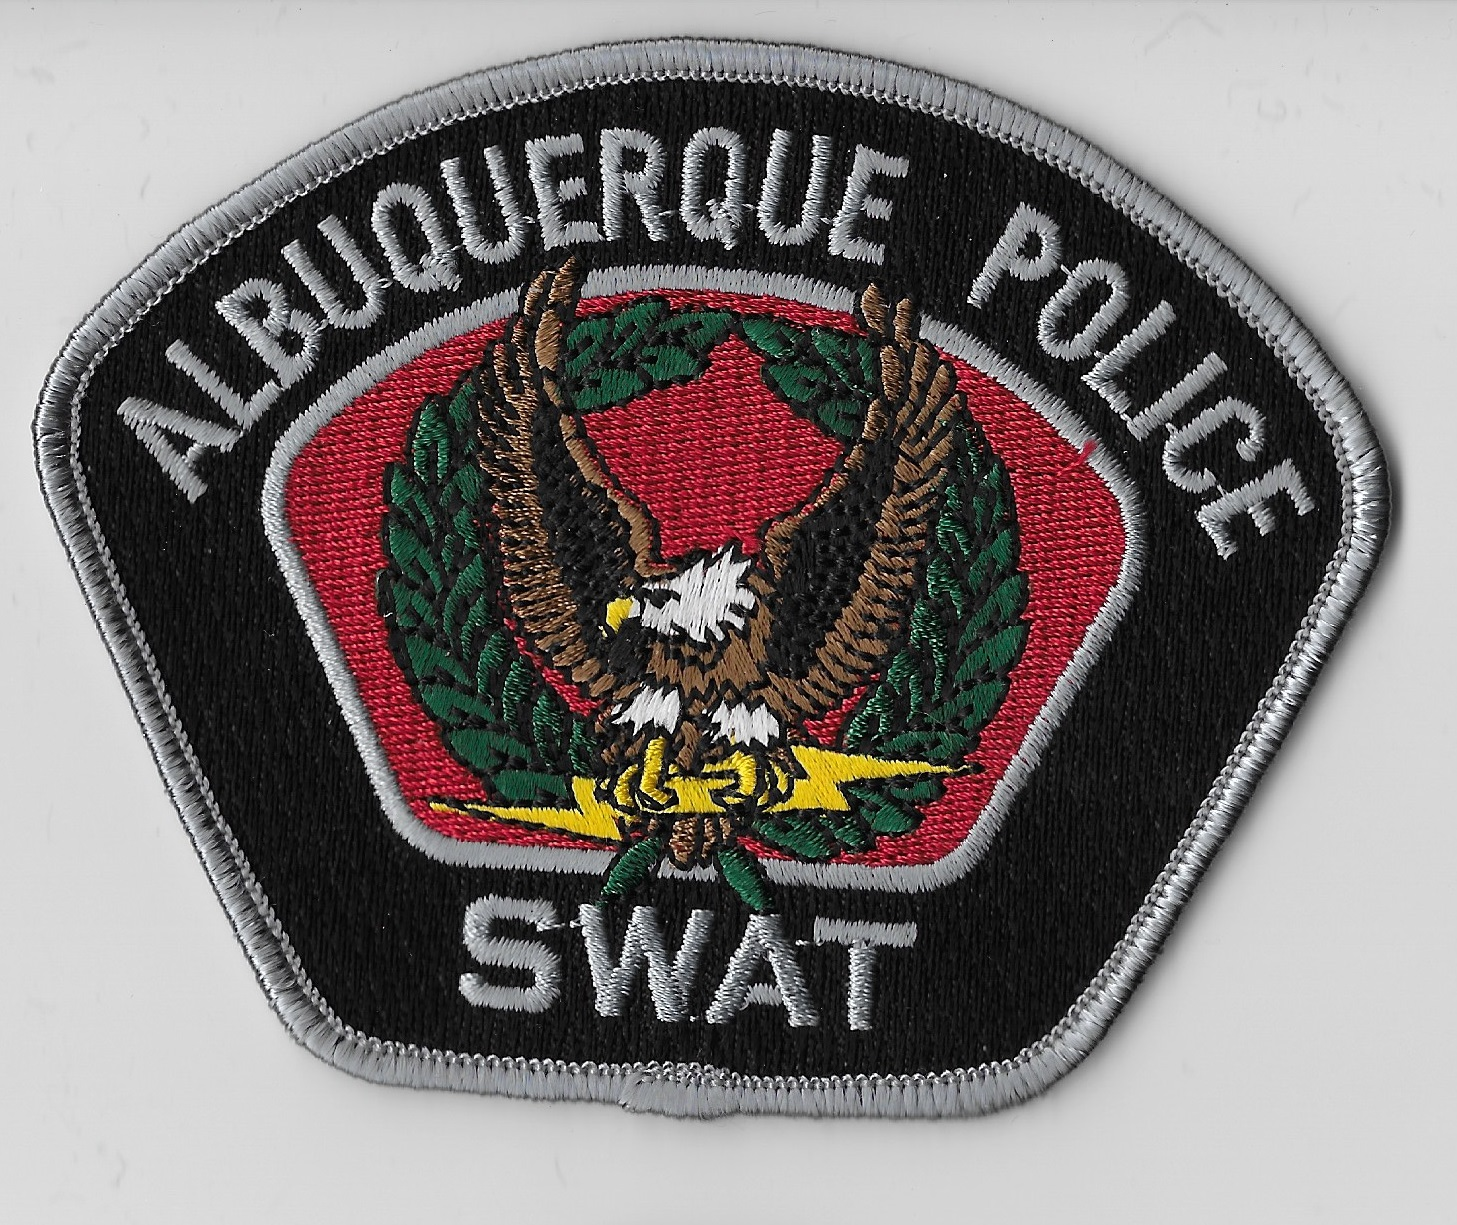 Albuquerque SWAT Police NM